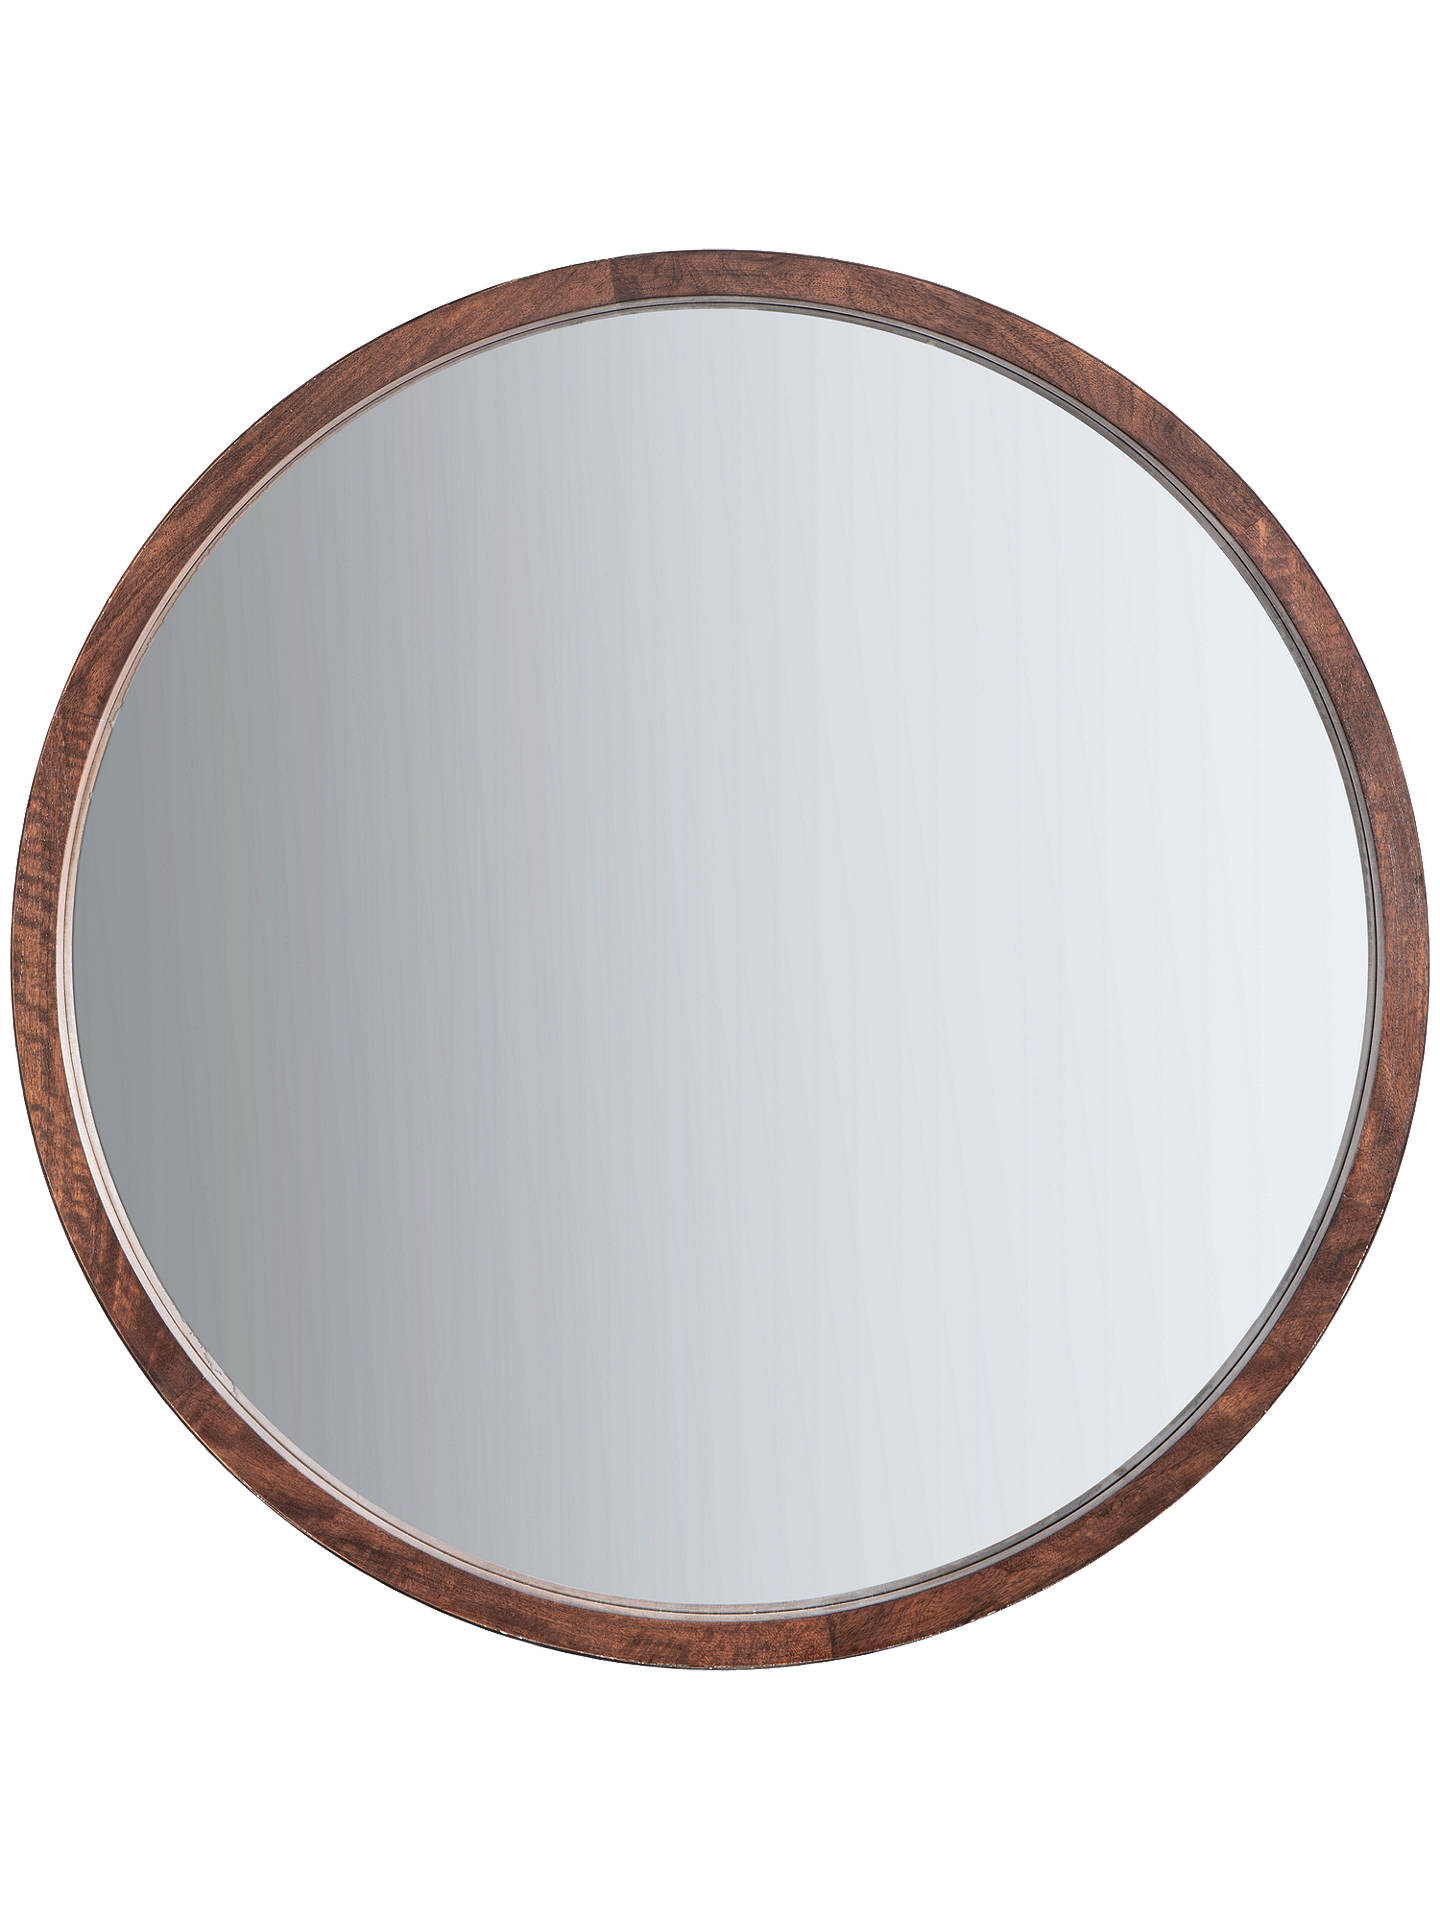 John Lewis & Partners Marx Wood Inlay Framed Round Mirror, 90cm ...